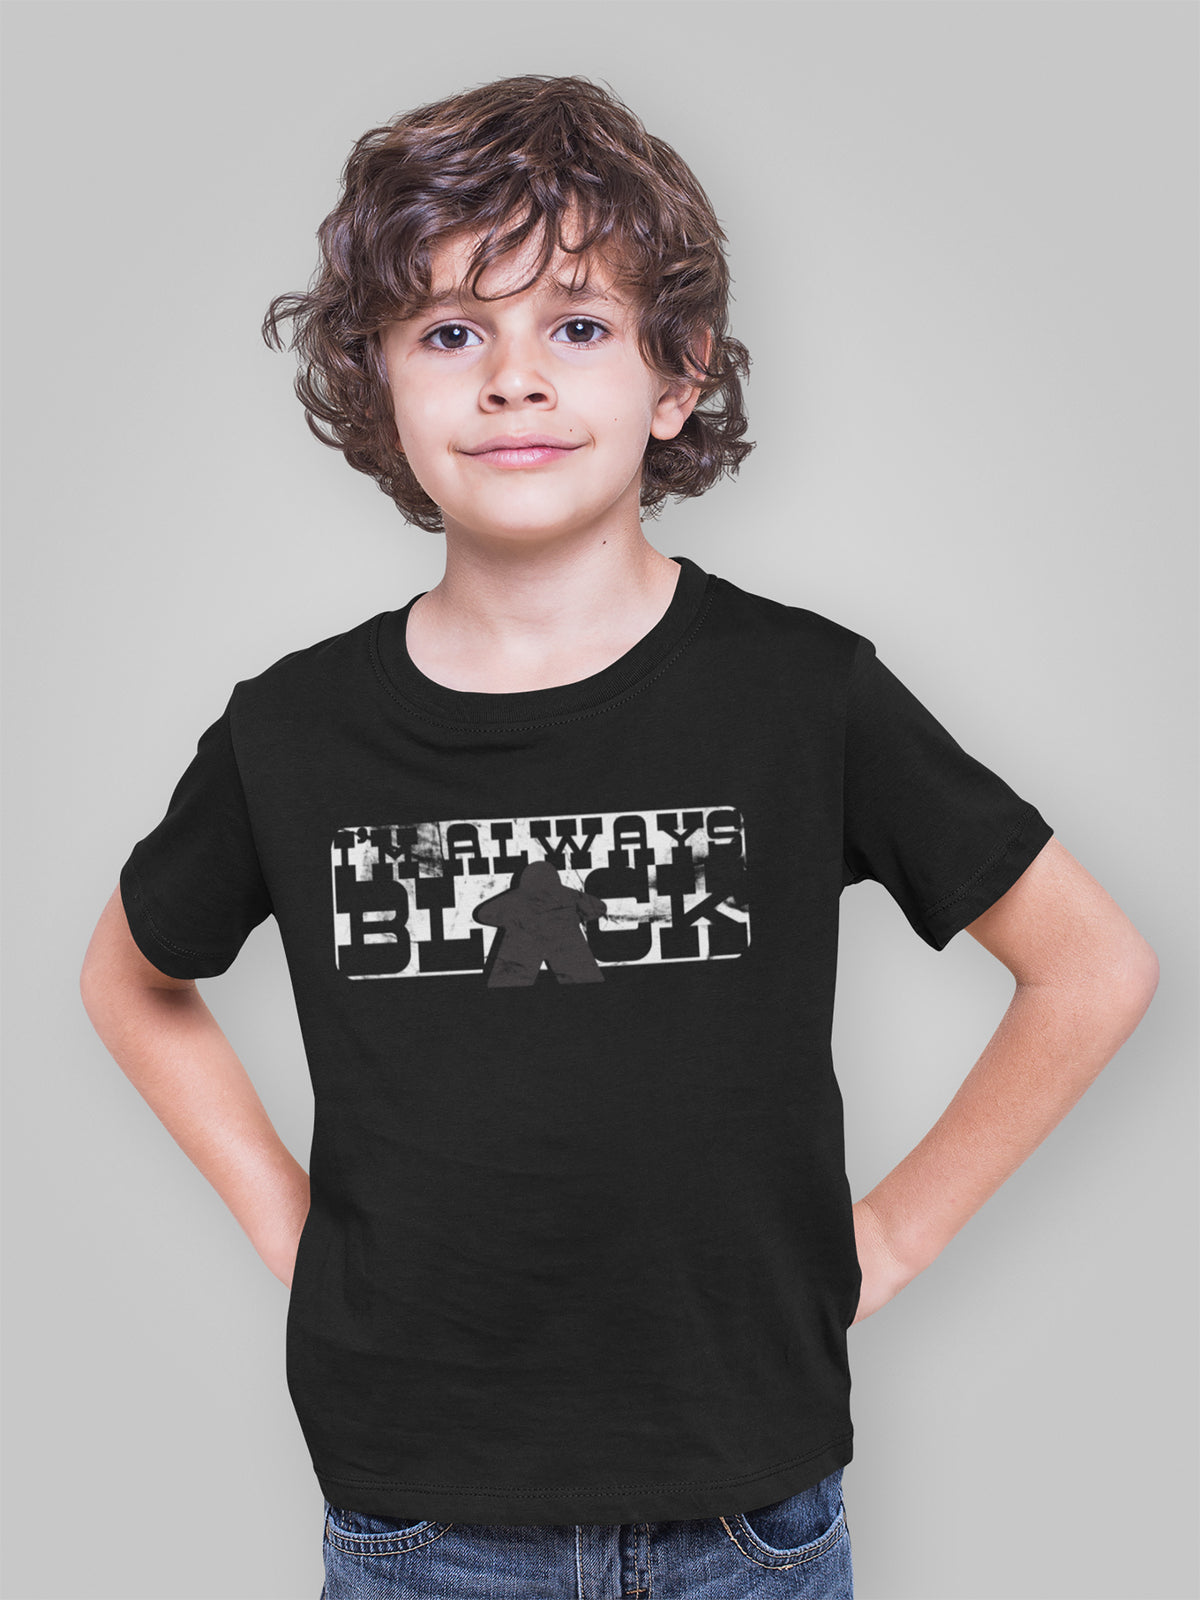 I'm Always Black Meeple Board Game T-Shirt Action Shot Boy's